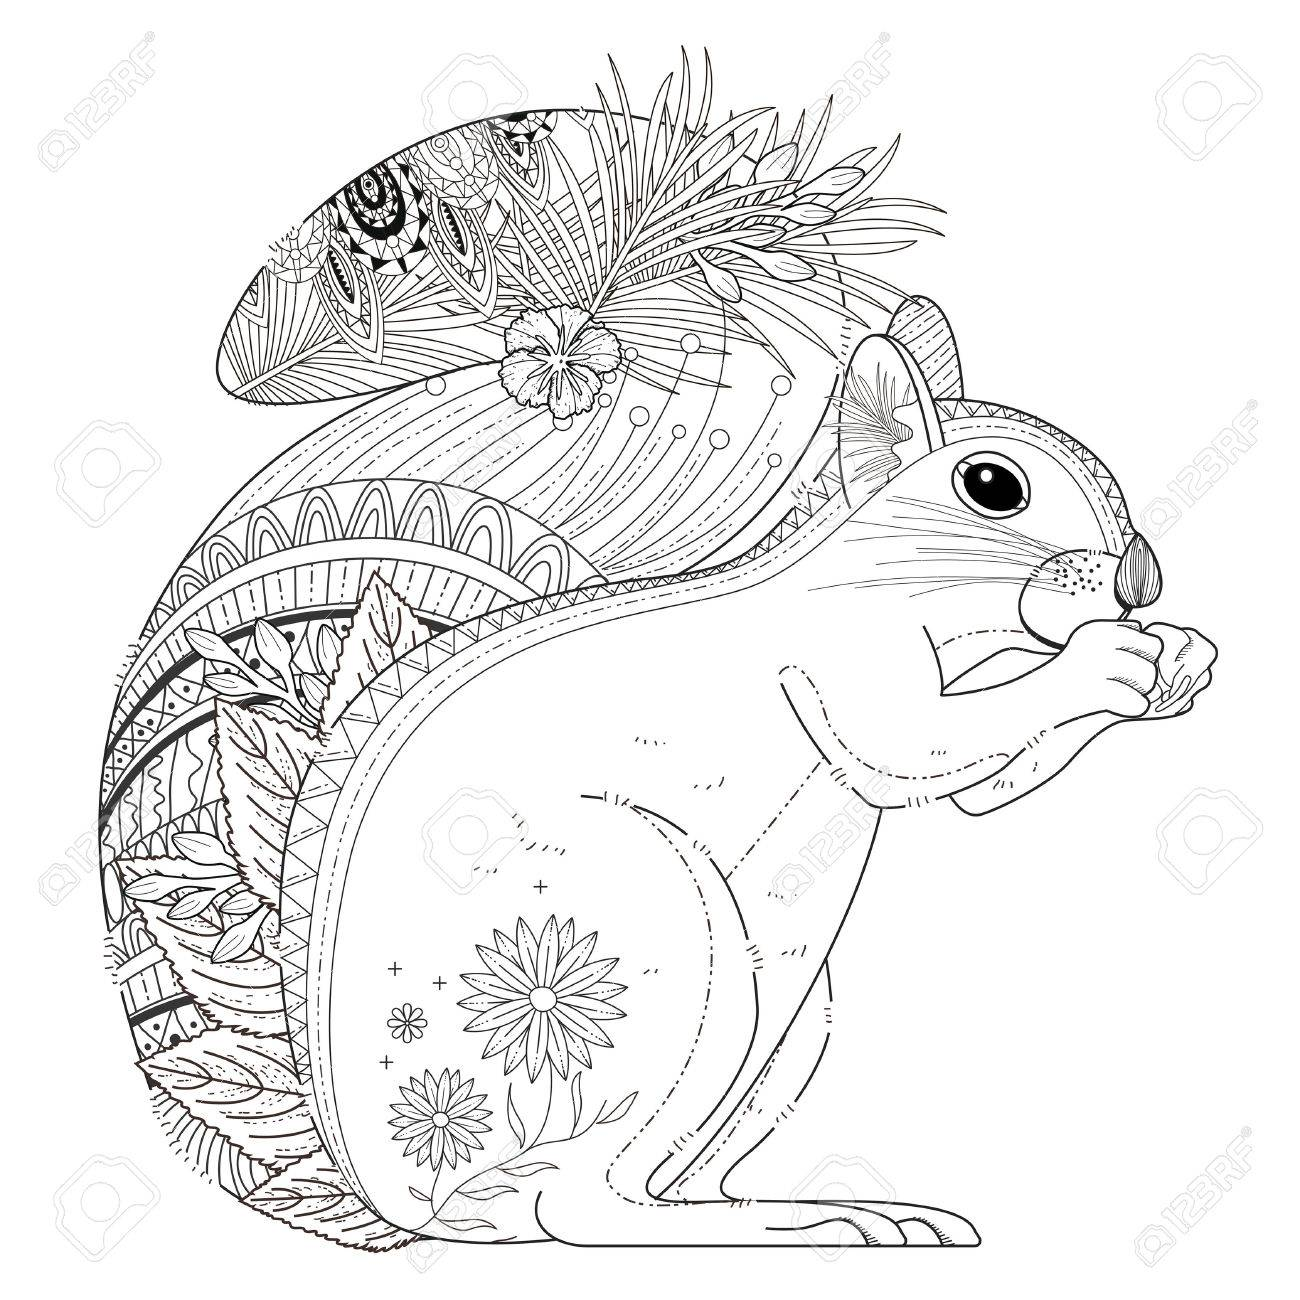 Squirrel Coloring Page Adorable Squirrel Coloring Page In Exquisite Line Royalty Free